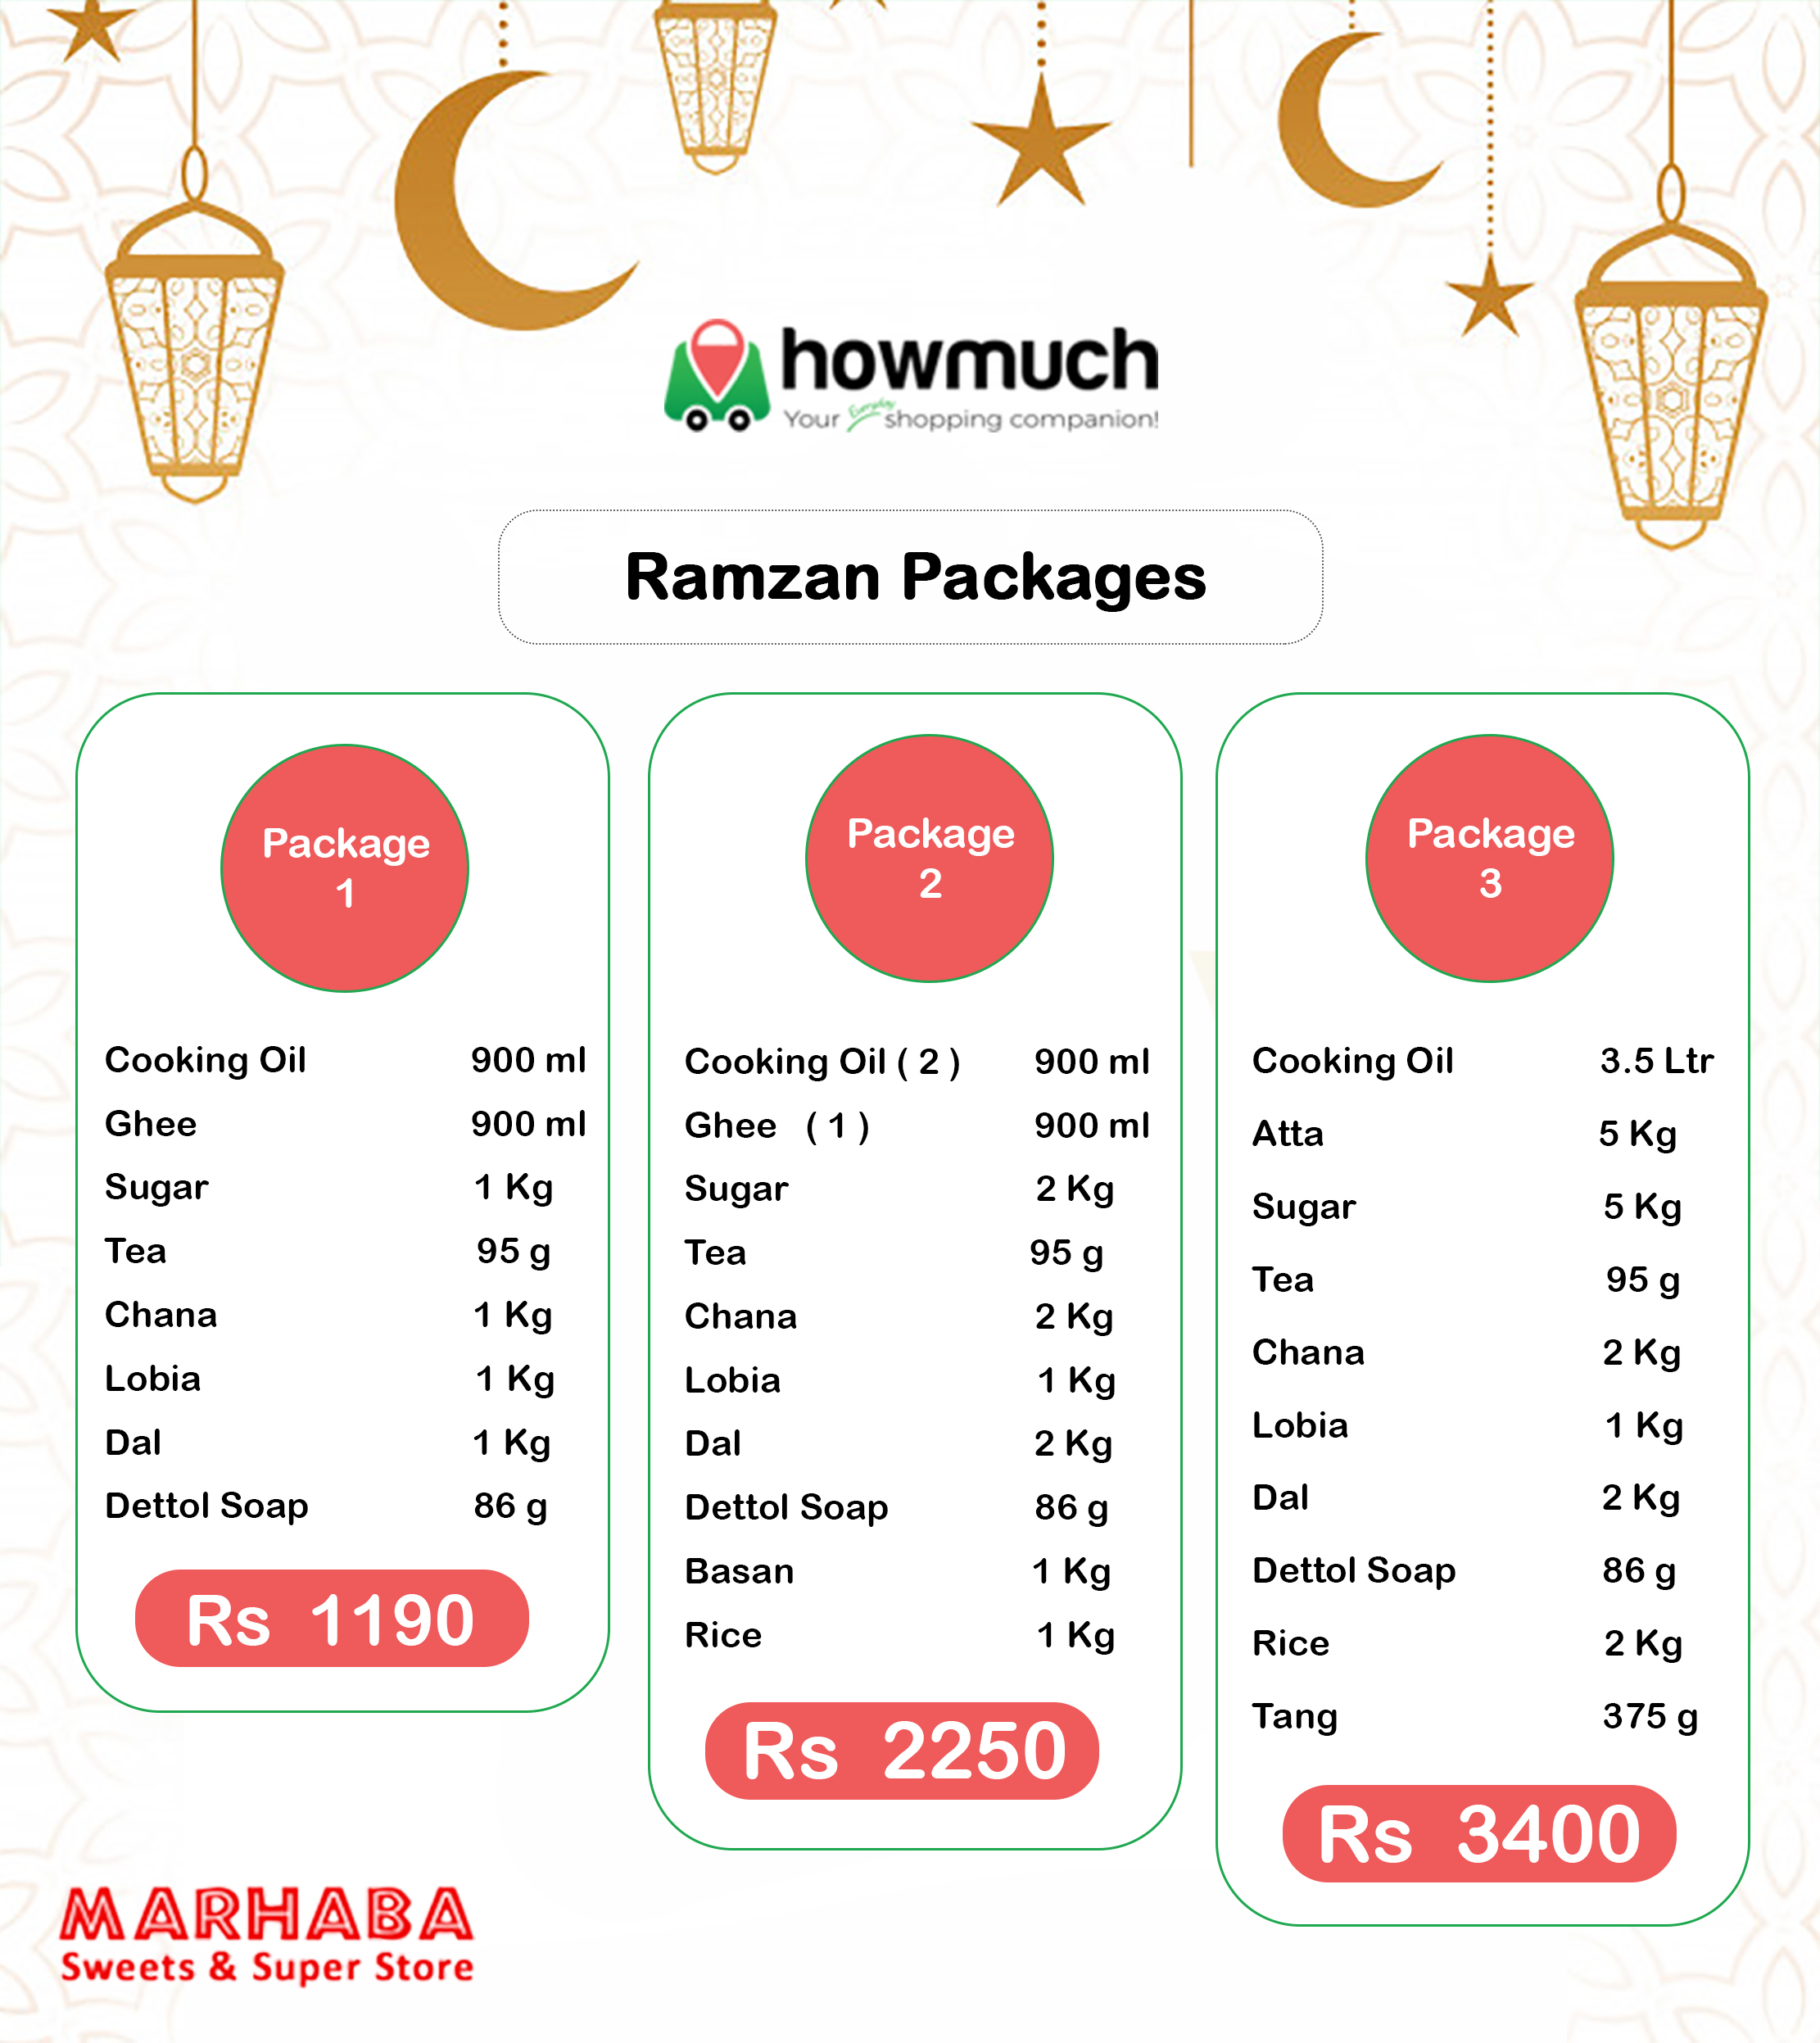 Share Your Blessings with Howmuch's Ramadan Packages